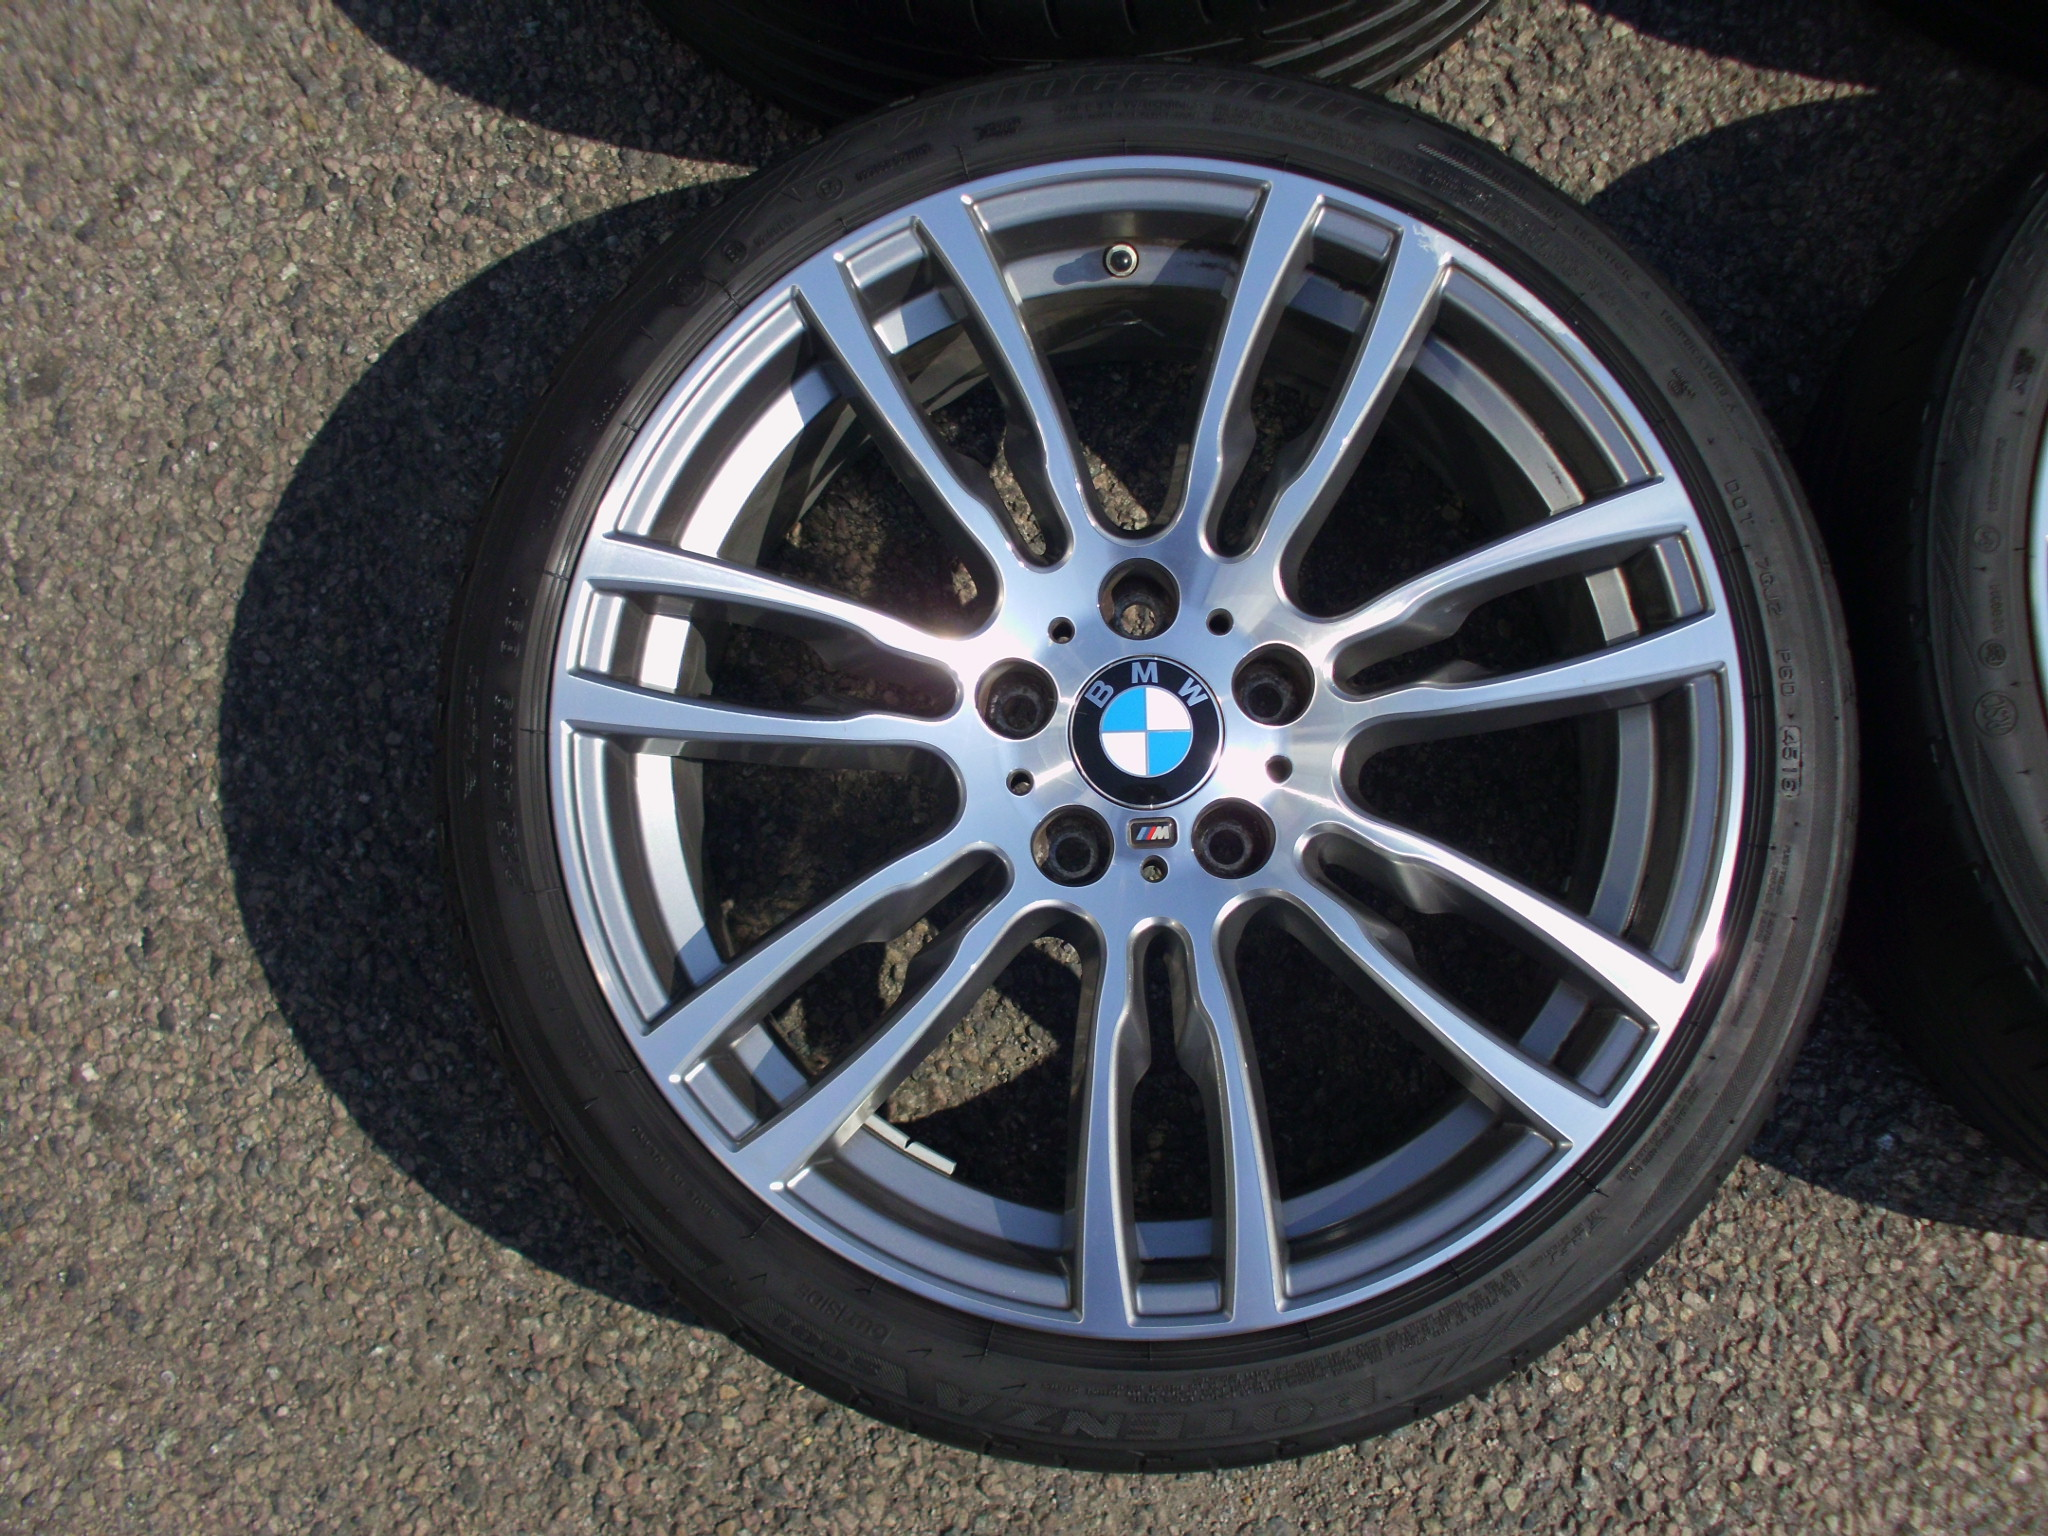 "USED 19"" GENUINE BMW STYLE 403 F30 M DOUBLE SPOKE ALLOY WHEELS , GOOD ORIGINAL CONDITION INC GOOD BRIDGESTONE RUNFLAT TYRES + TMPS"